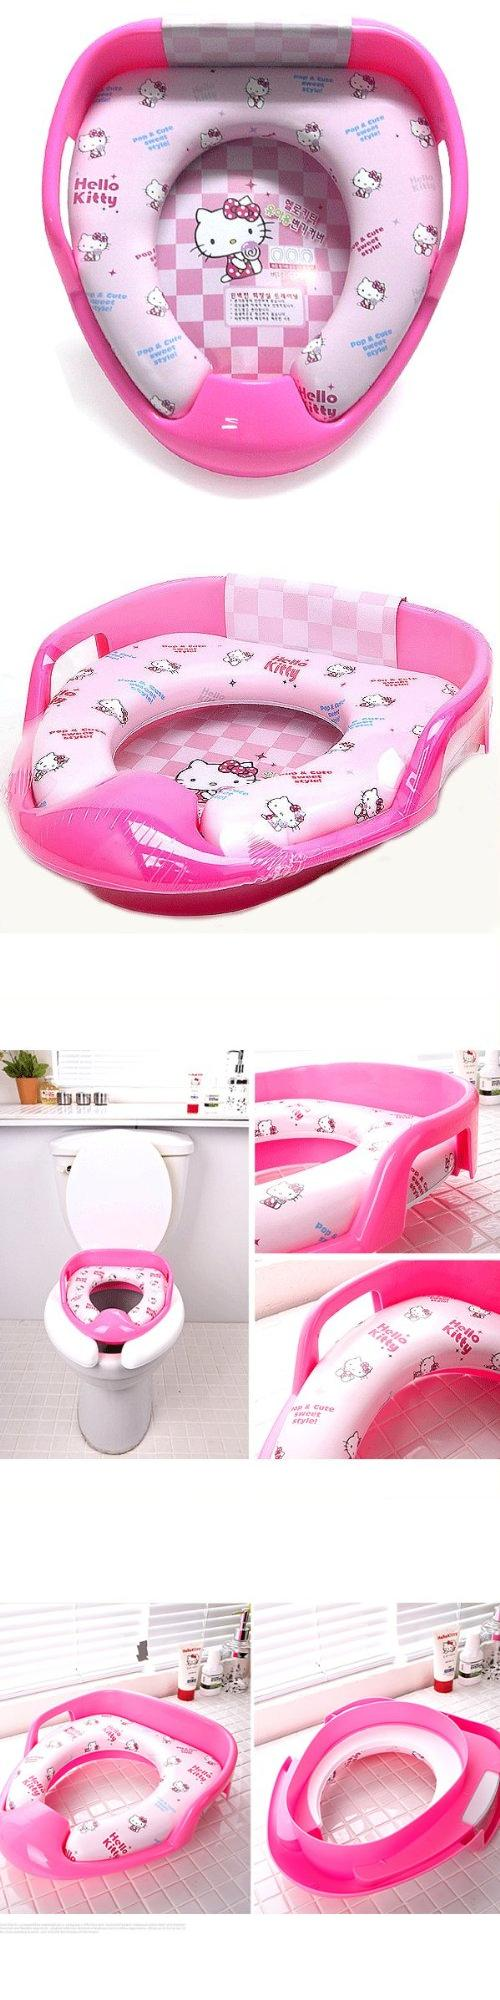 Hello Kitty Potty Chair Spandex Sashes For Folding Chairs Combined Training Seat Cover Bidet Toilet Child Baby Rare Cuddly